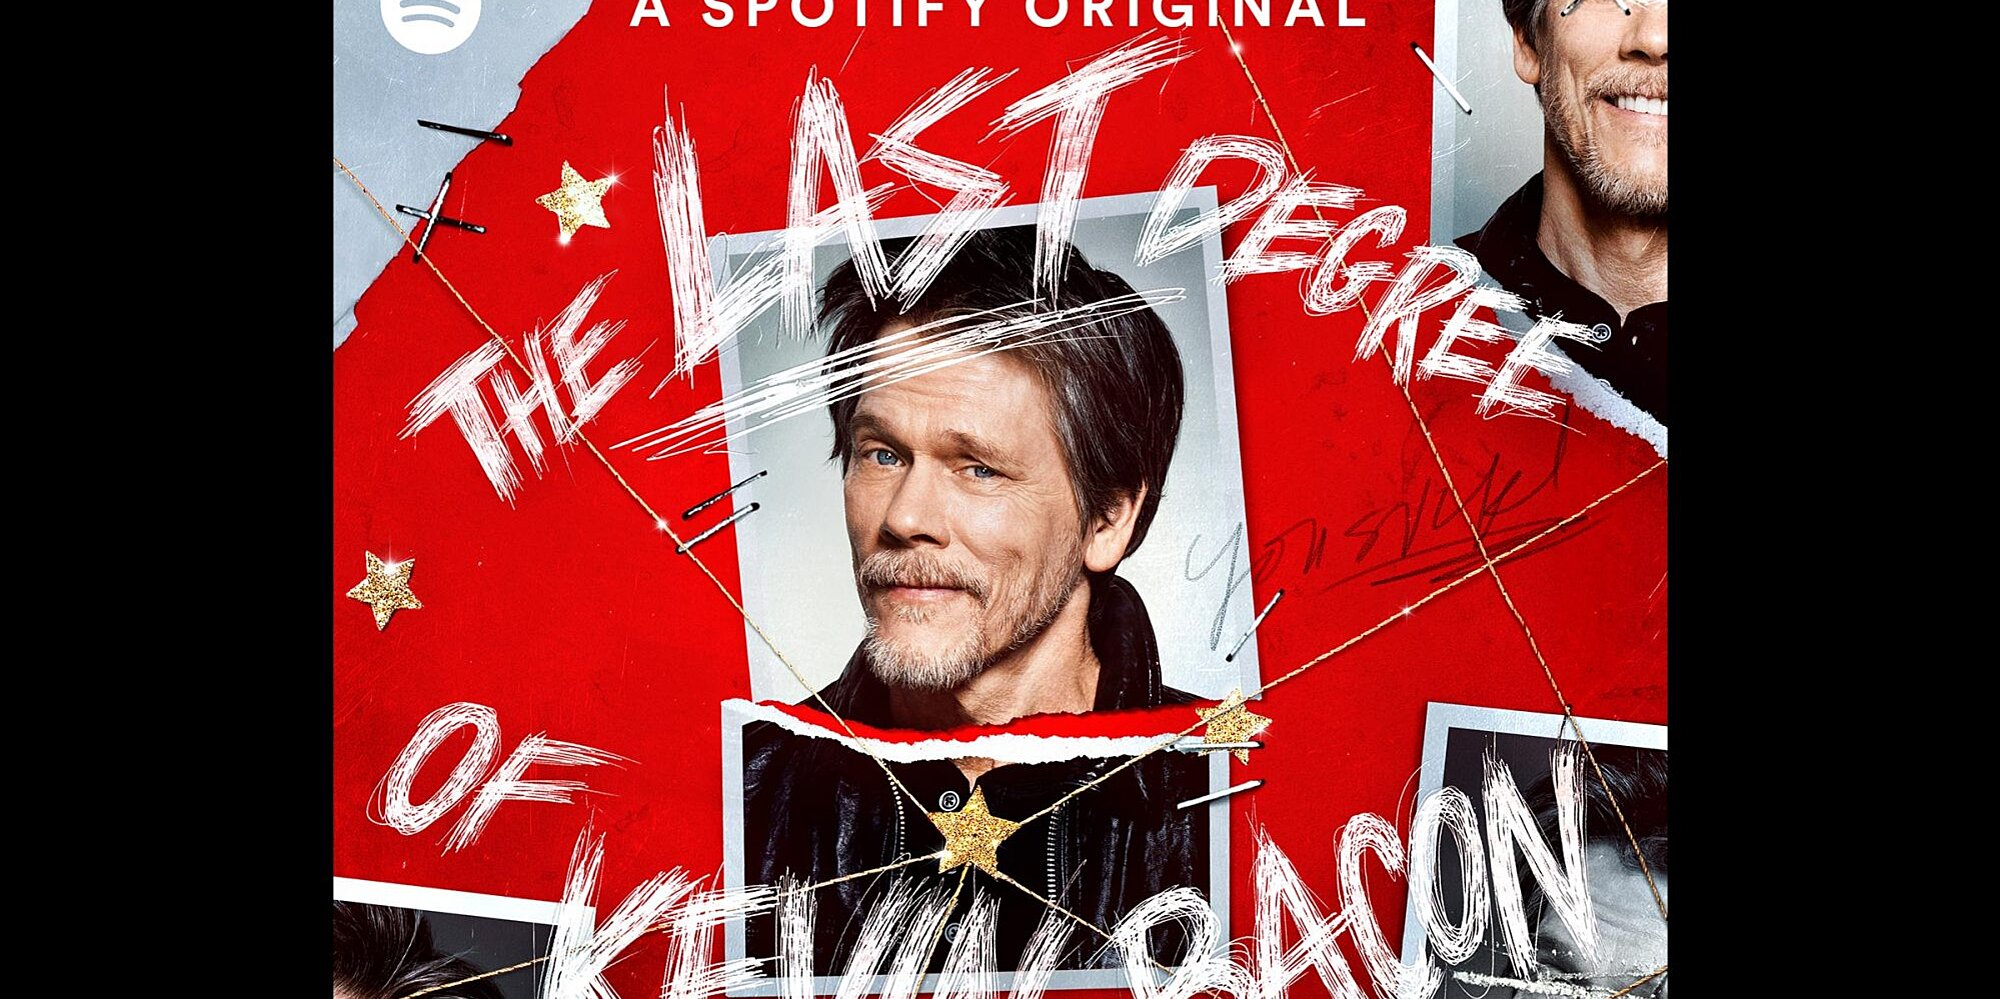 Kevin Bacon's best friend definitely wants to murder him in exclusive trailer for his new podcast